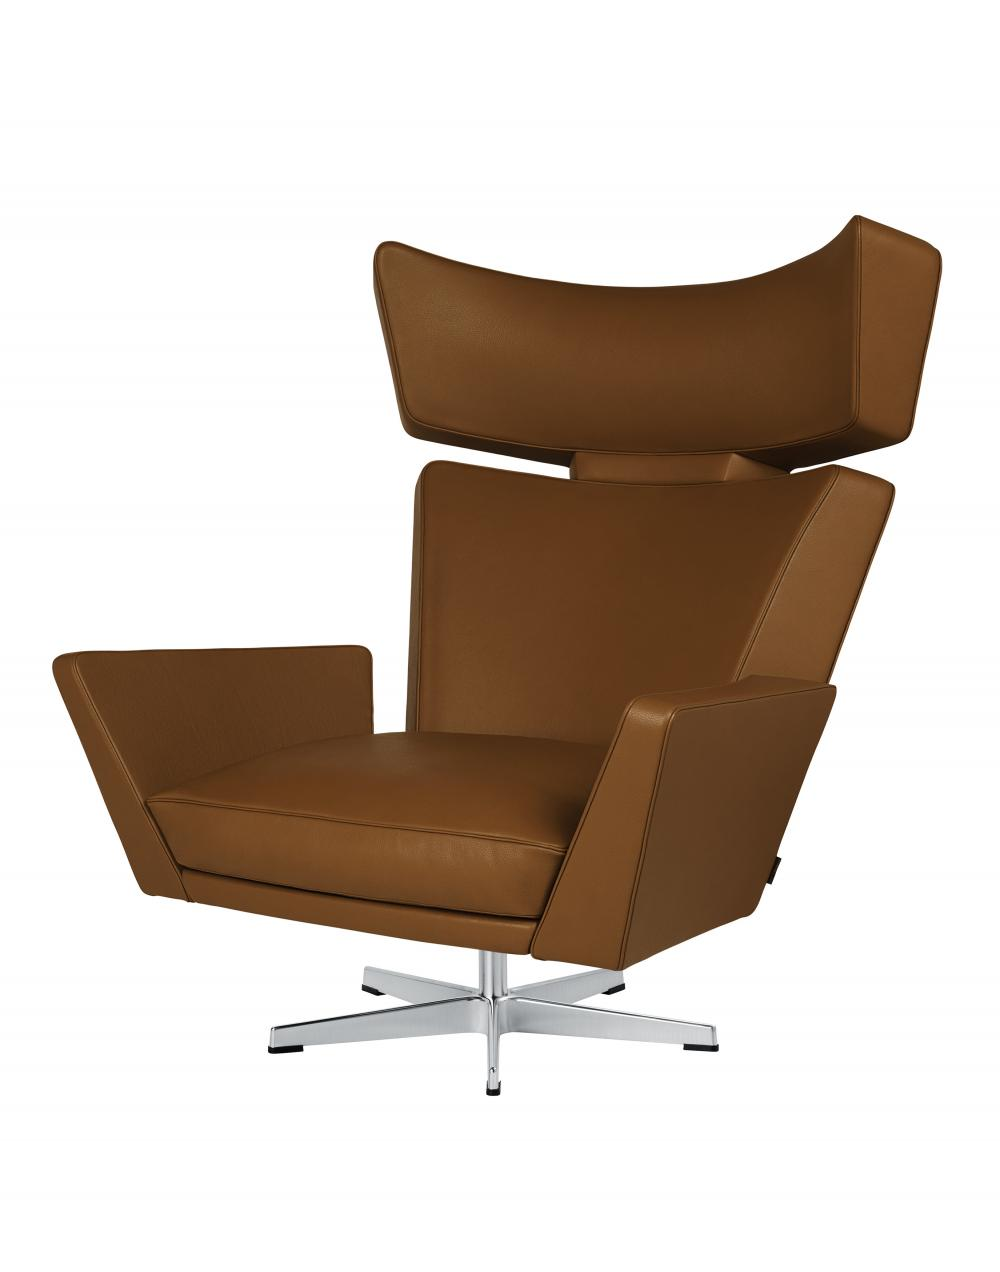 Oksen lounge chair & footstool